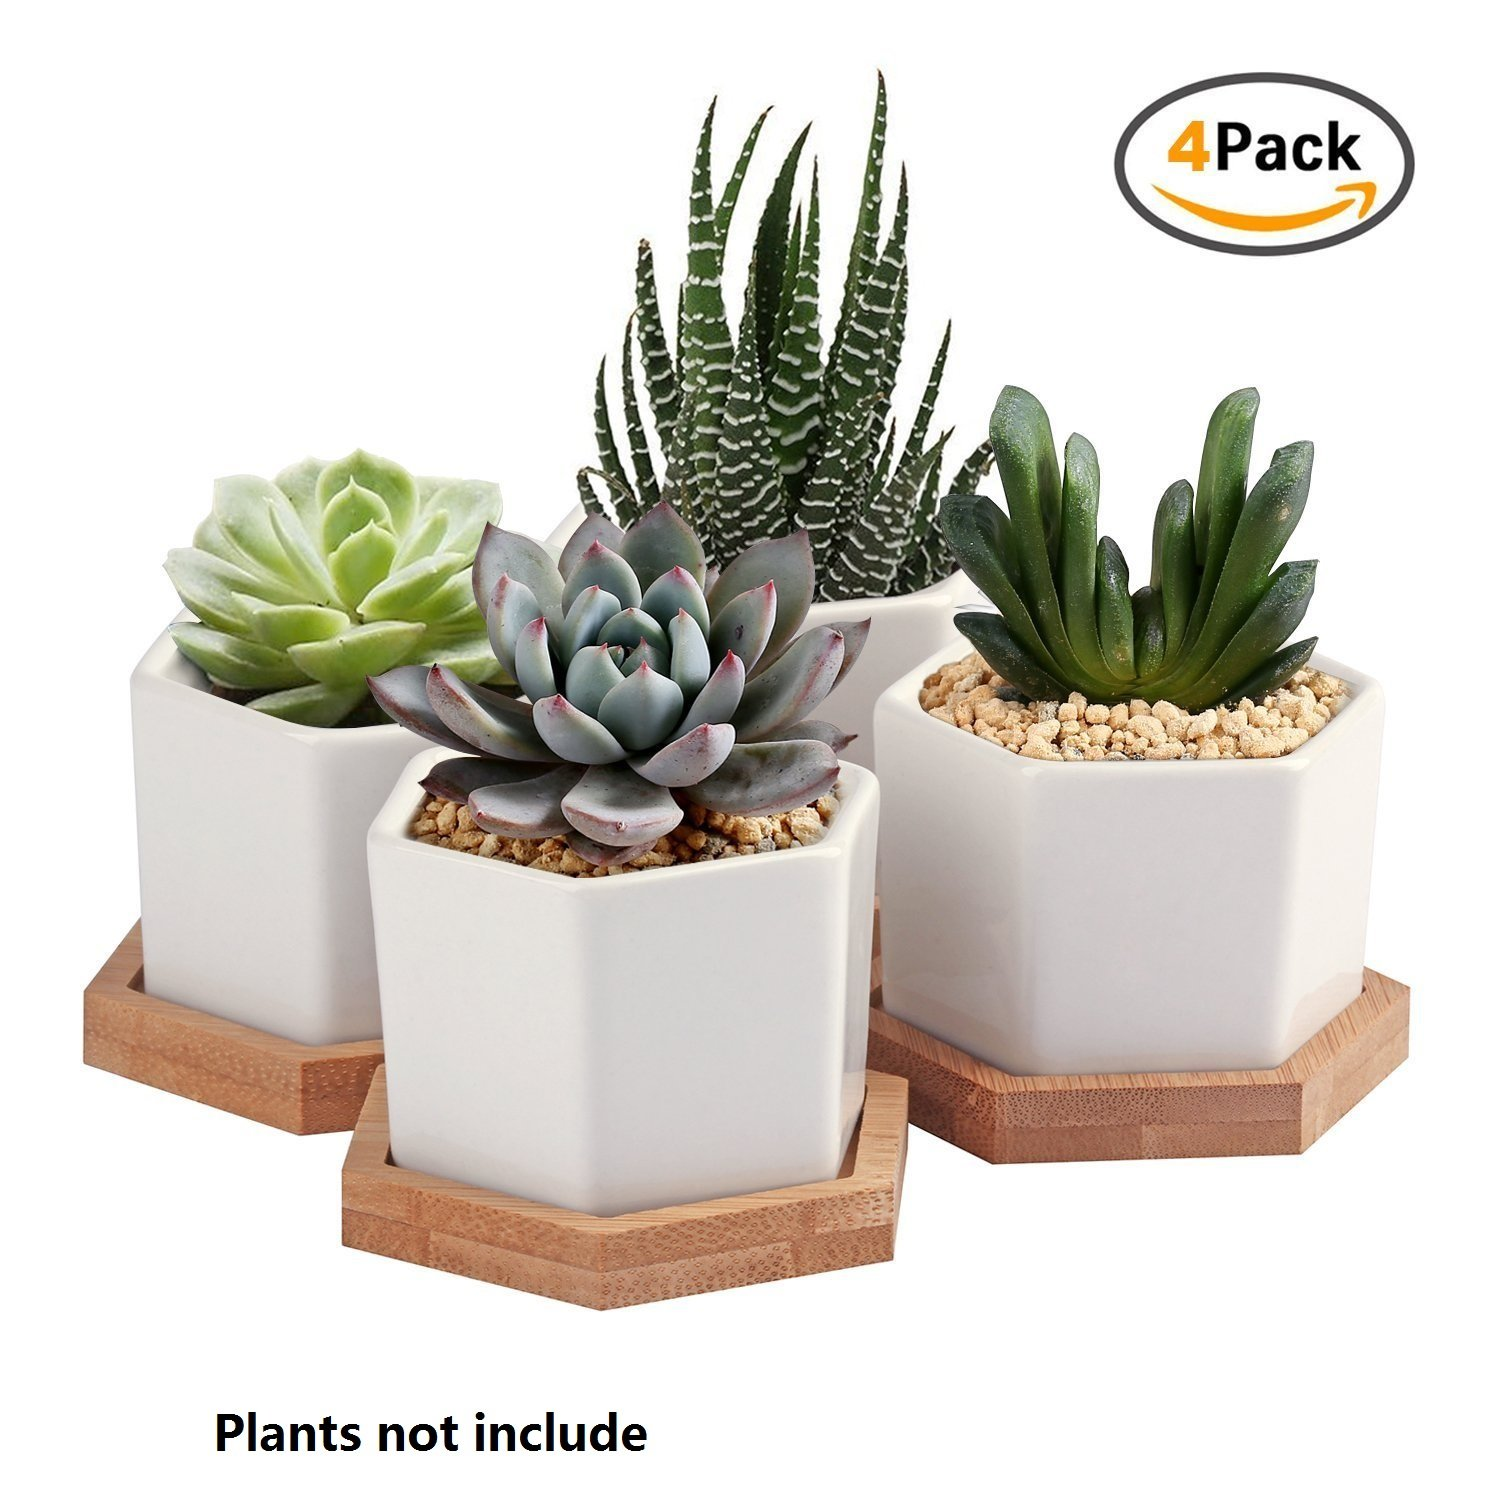 Succulent Plant Pots,Oamceg 2.75 Inch Succulent Plant Pots,Set Of 4 White Ceramic Succulent Cactus Planter Pots With Bamboo Tray by Oamceg